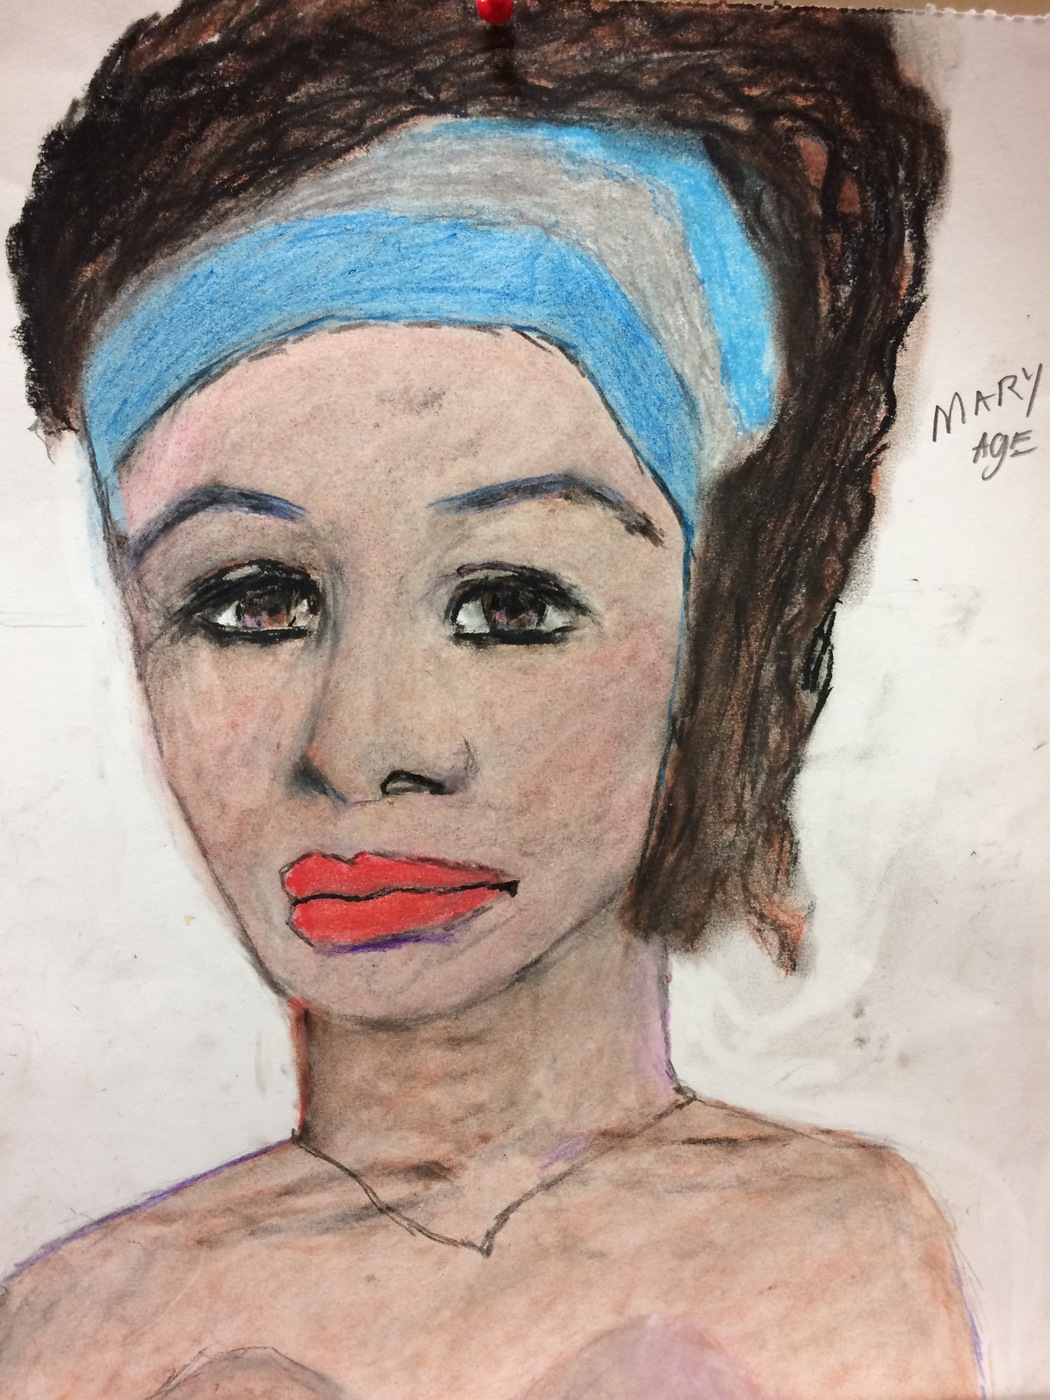 Samuel Little Drawing of Black Male Victim Mary Ann (Killed in 1971 or 1972, Miami)